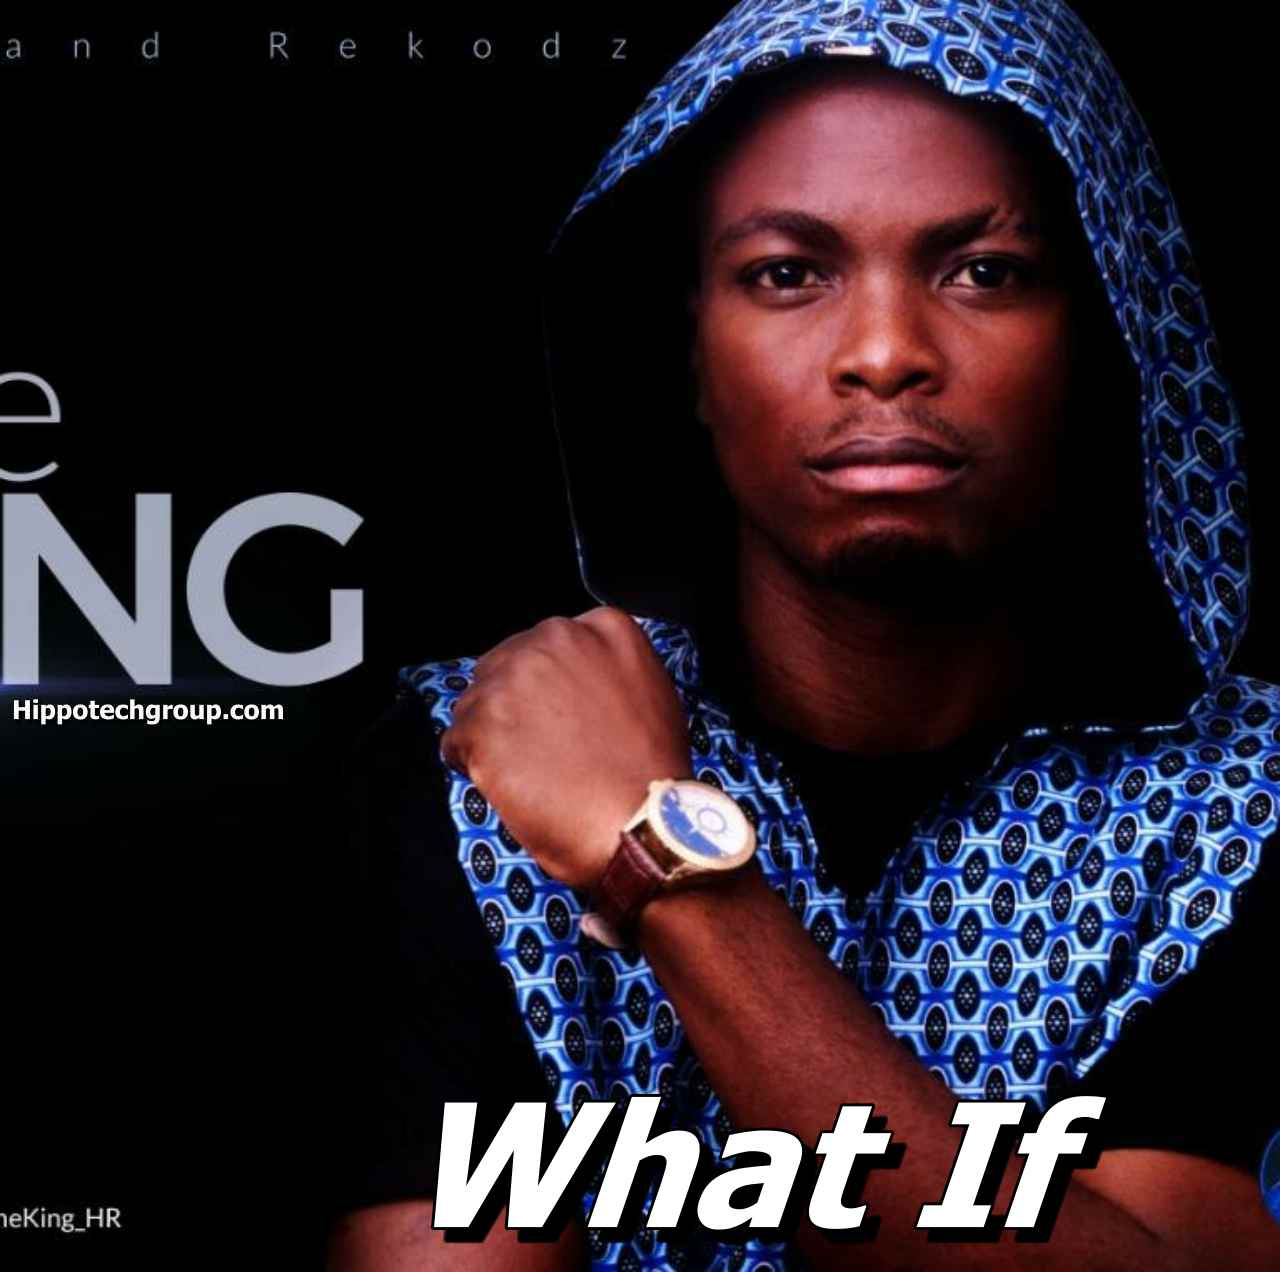 Download and Listen to What If by Cameroon Musician The KING